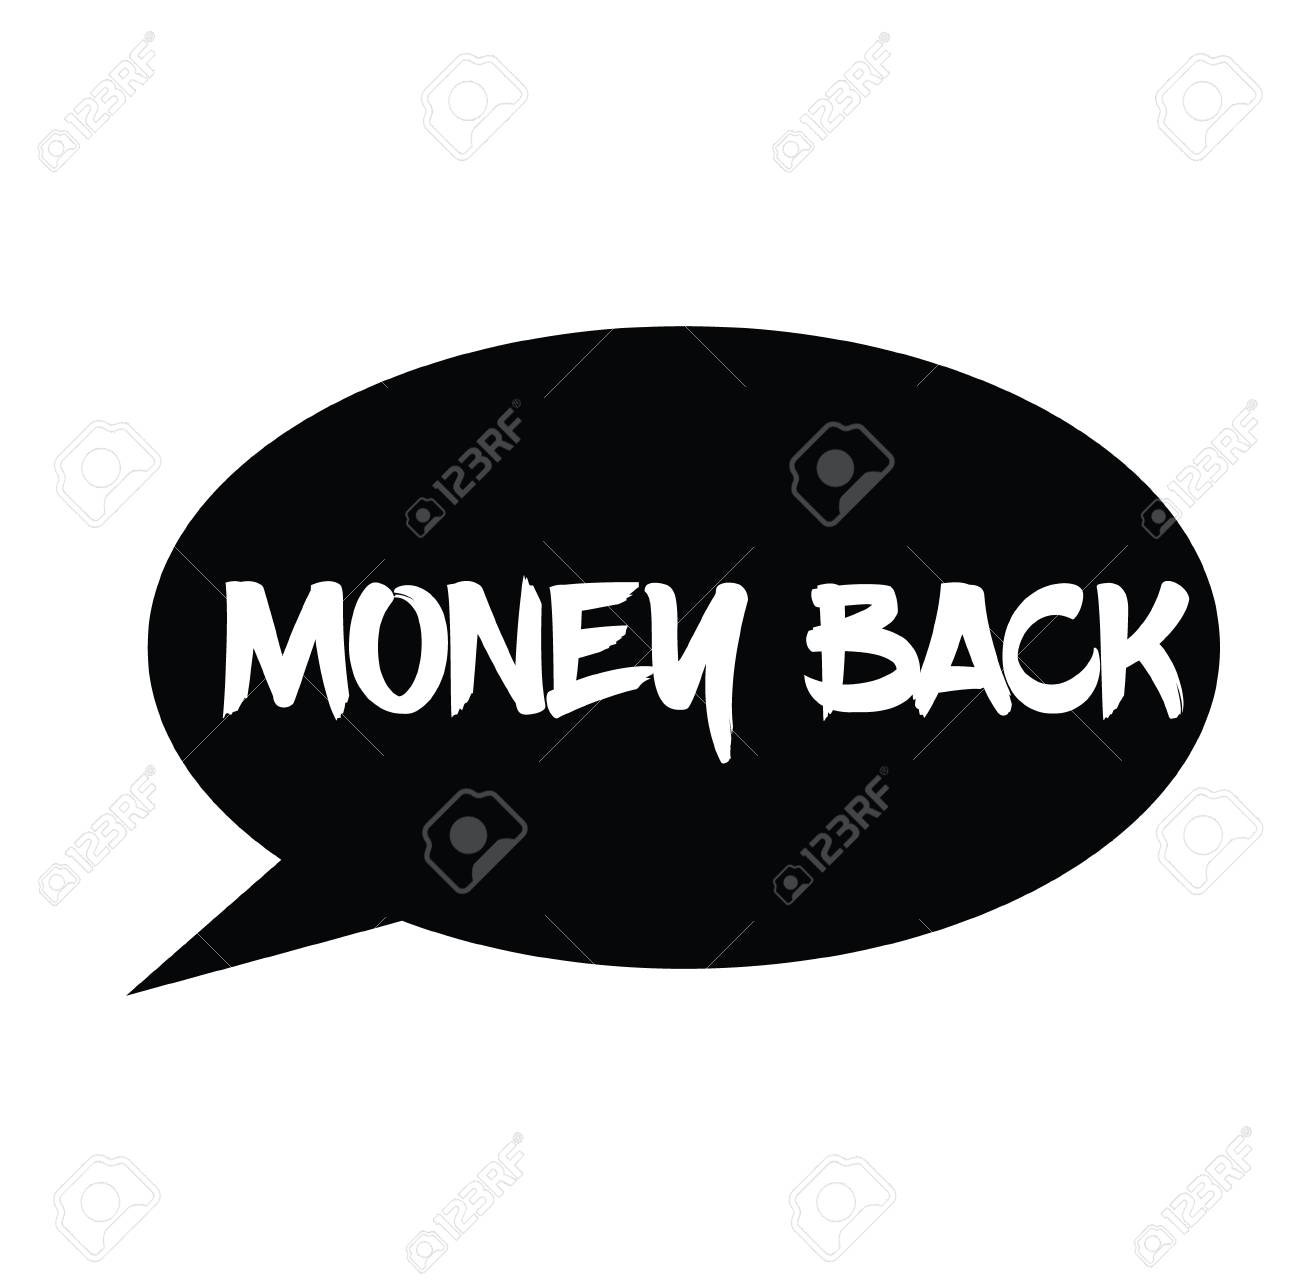 Money Back Rubber Stamp Black Sign Label Sticker Lizenzfrei